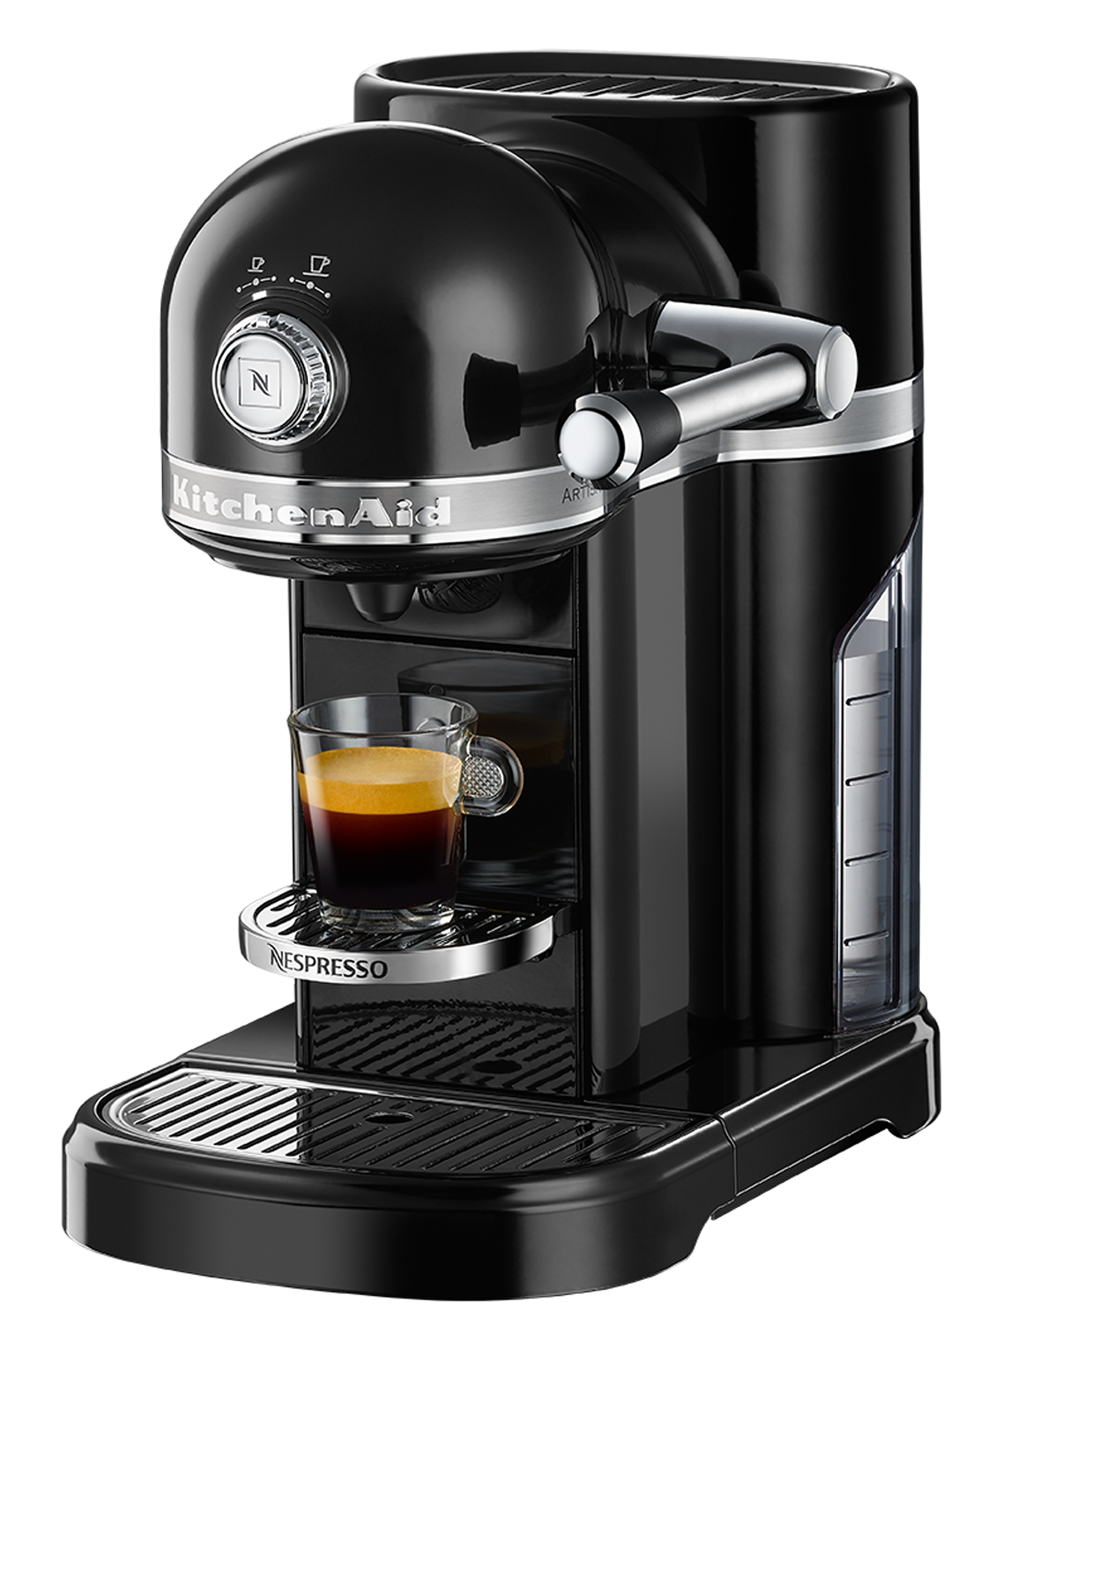 Nespresso KitchenAid Coffee Machine, Onyx Black